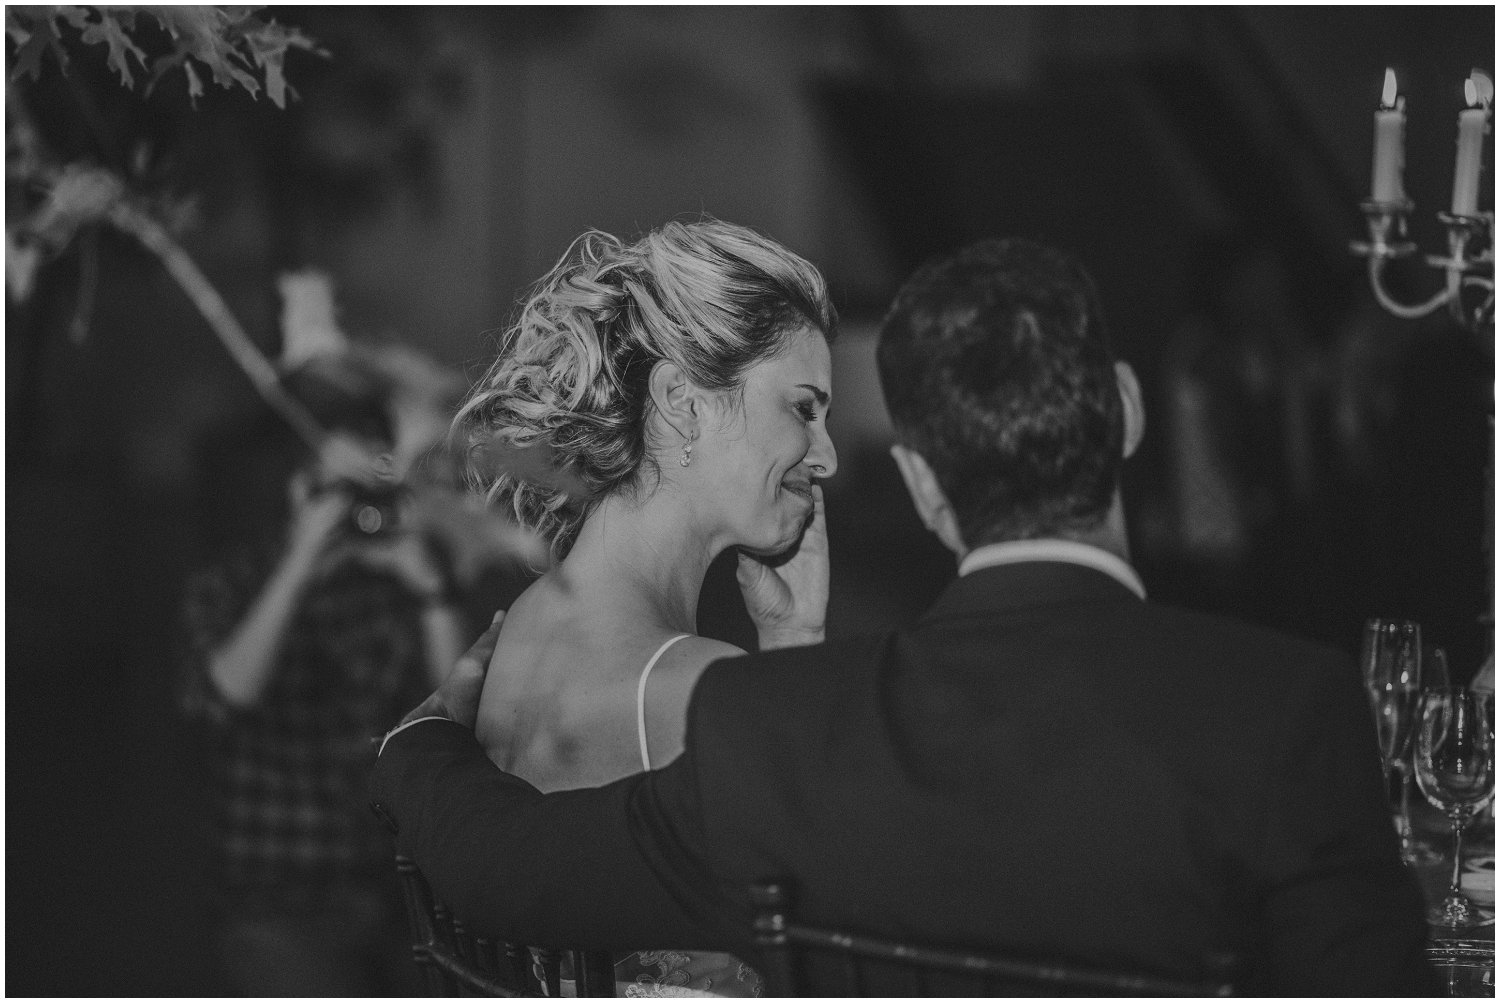 Top Artistic Creative Documentary Wedding Photographer Cape Town South Africa Rue Kruger_0165.jpg